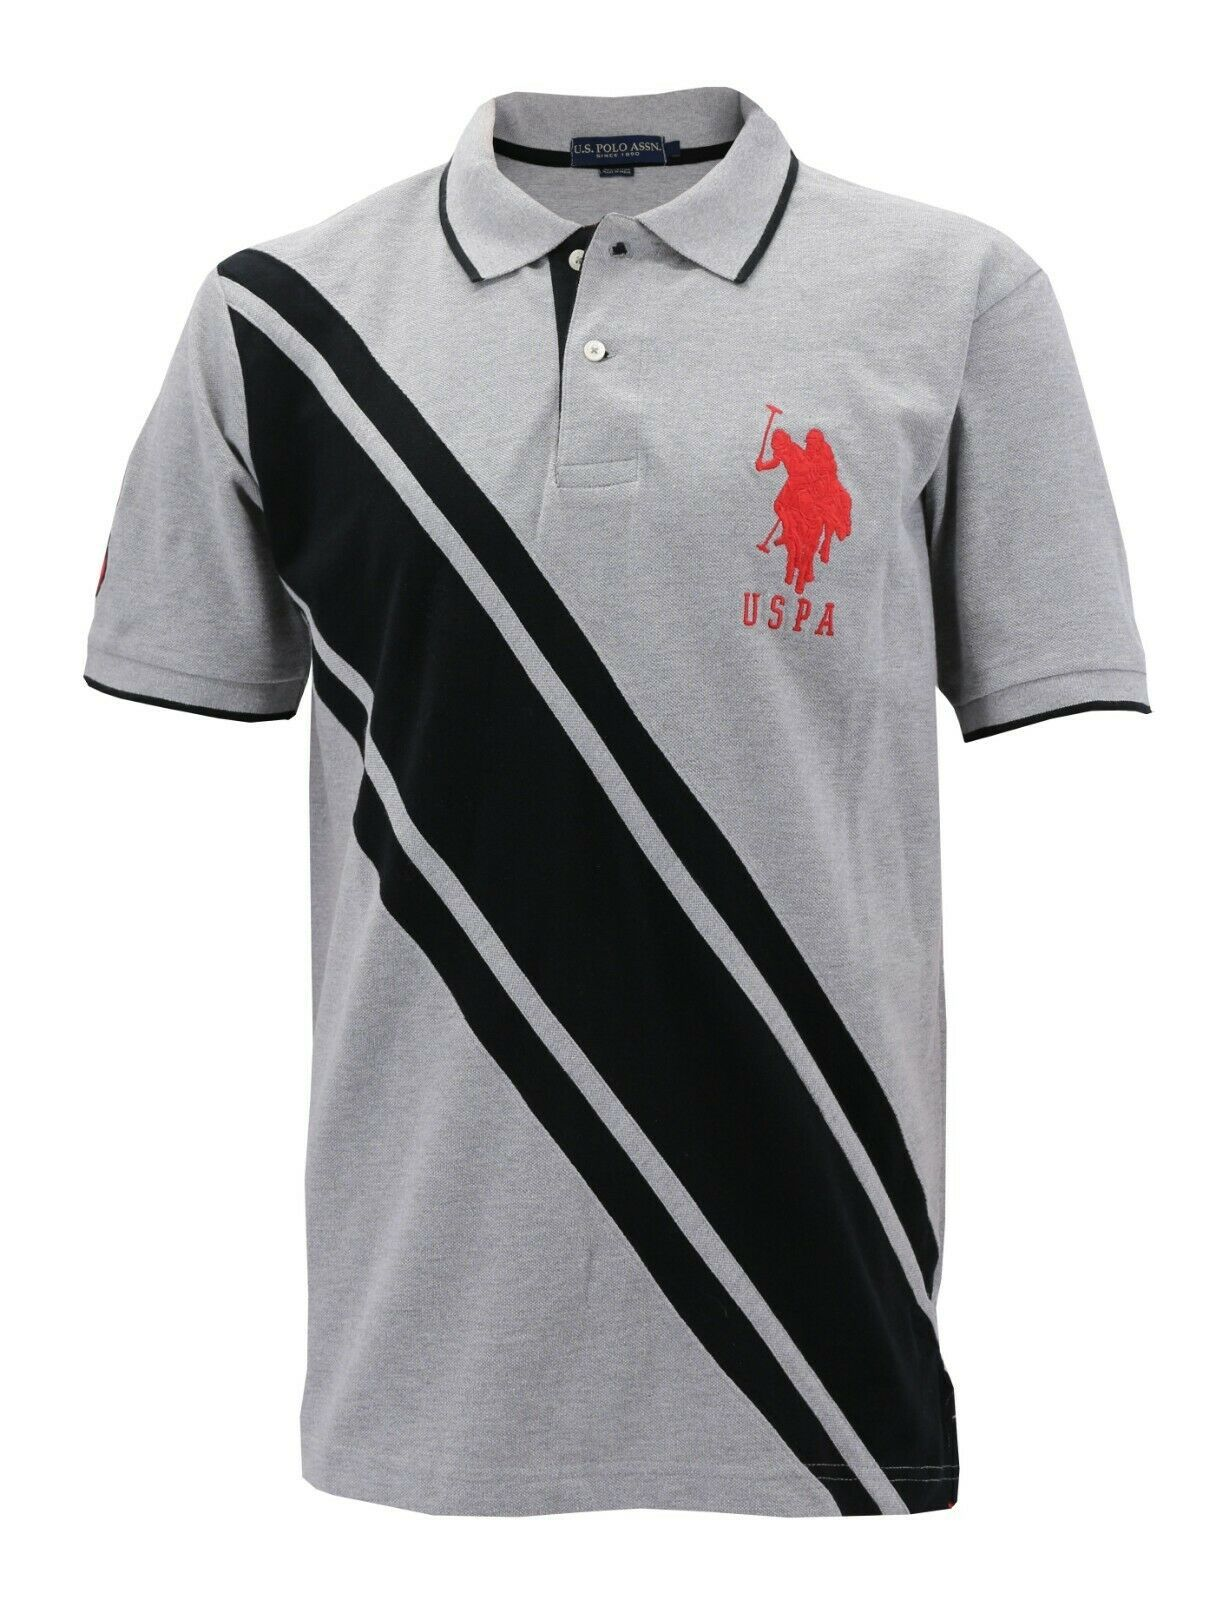 NEW US POLO ASSN MEN'S PREMIUM ATHLETIC CLASSIC COTTON GOLF SHIRT T-SHIRT GRAY